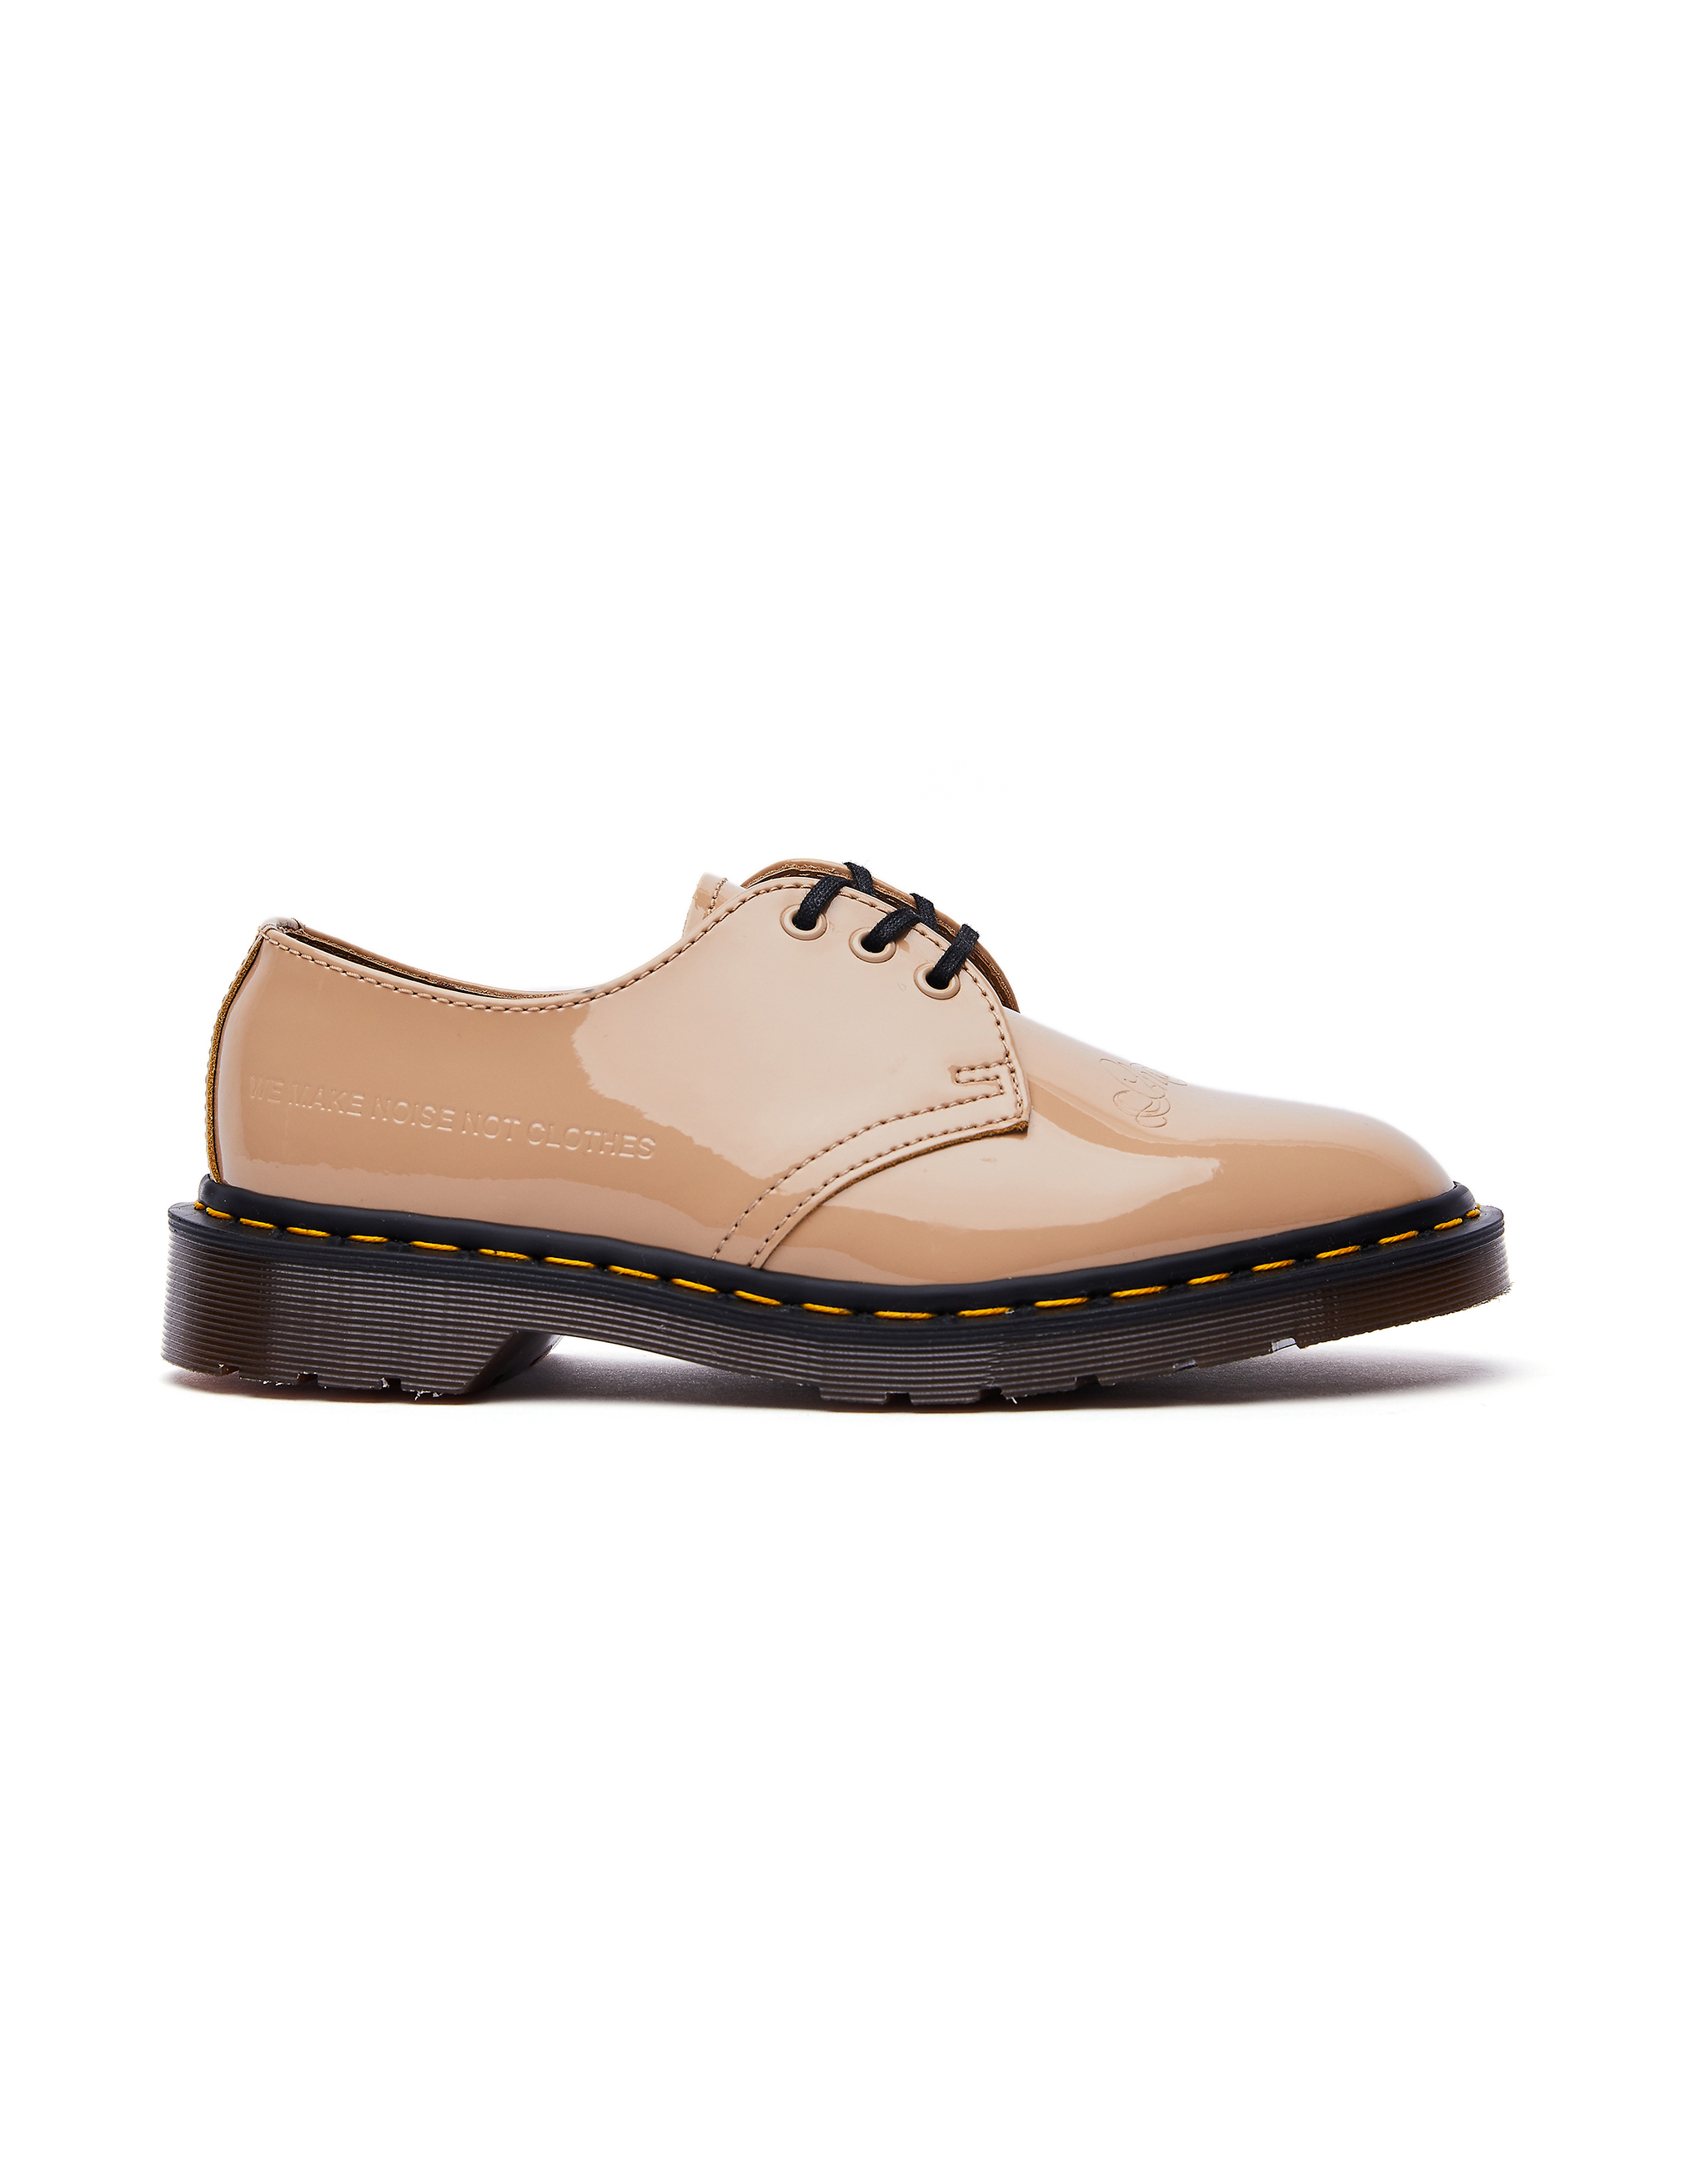 Undercover Dr.Martens Beige Patent Leather 1461 Boots